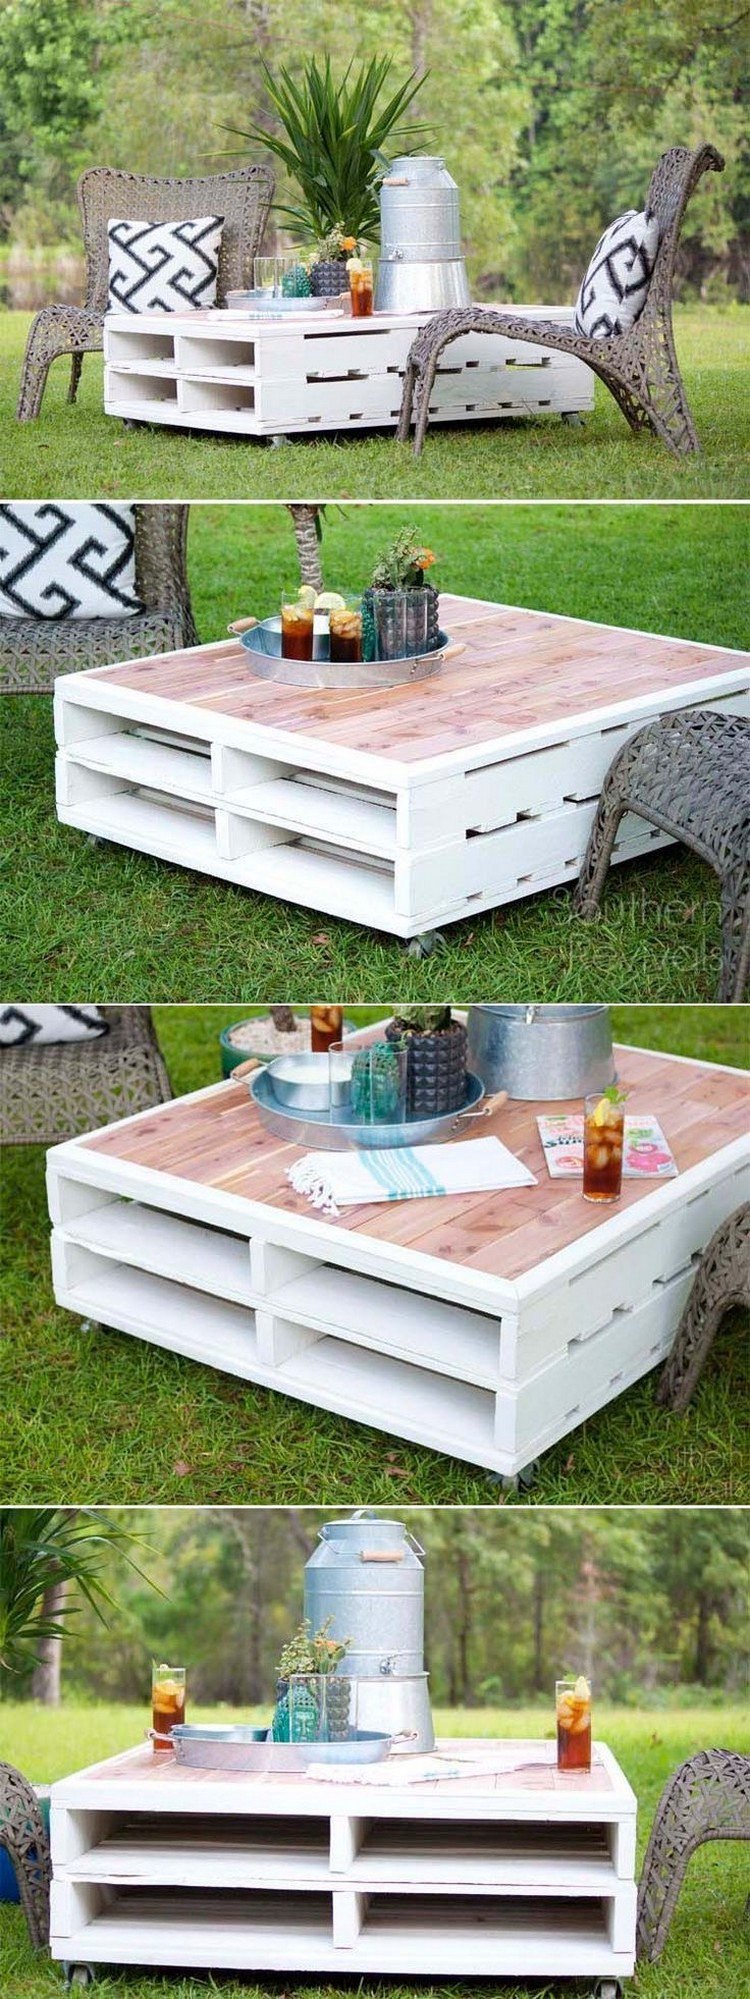 Most easiest but practical recycled pallet ideas that for Small outdoor table ideas